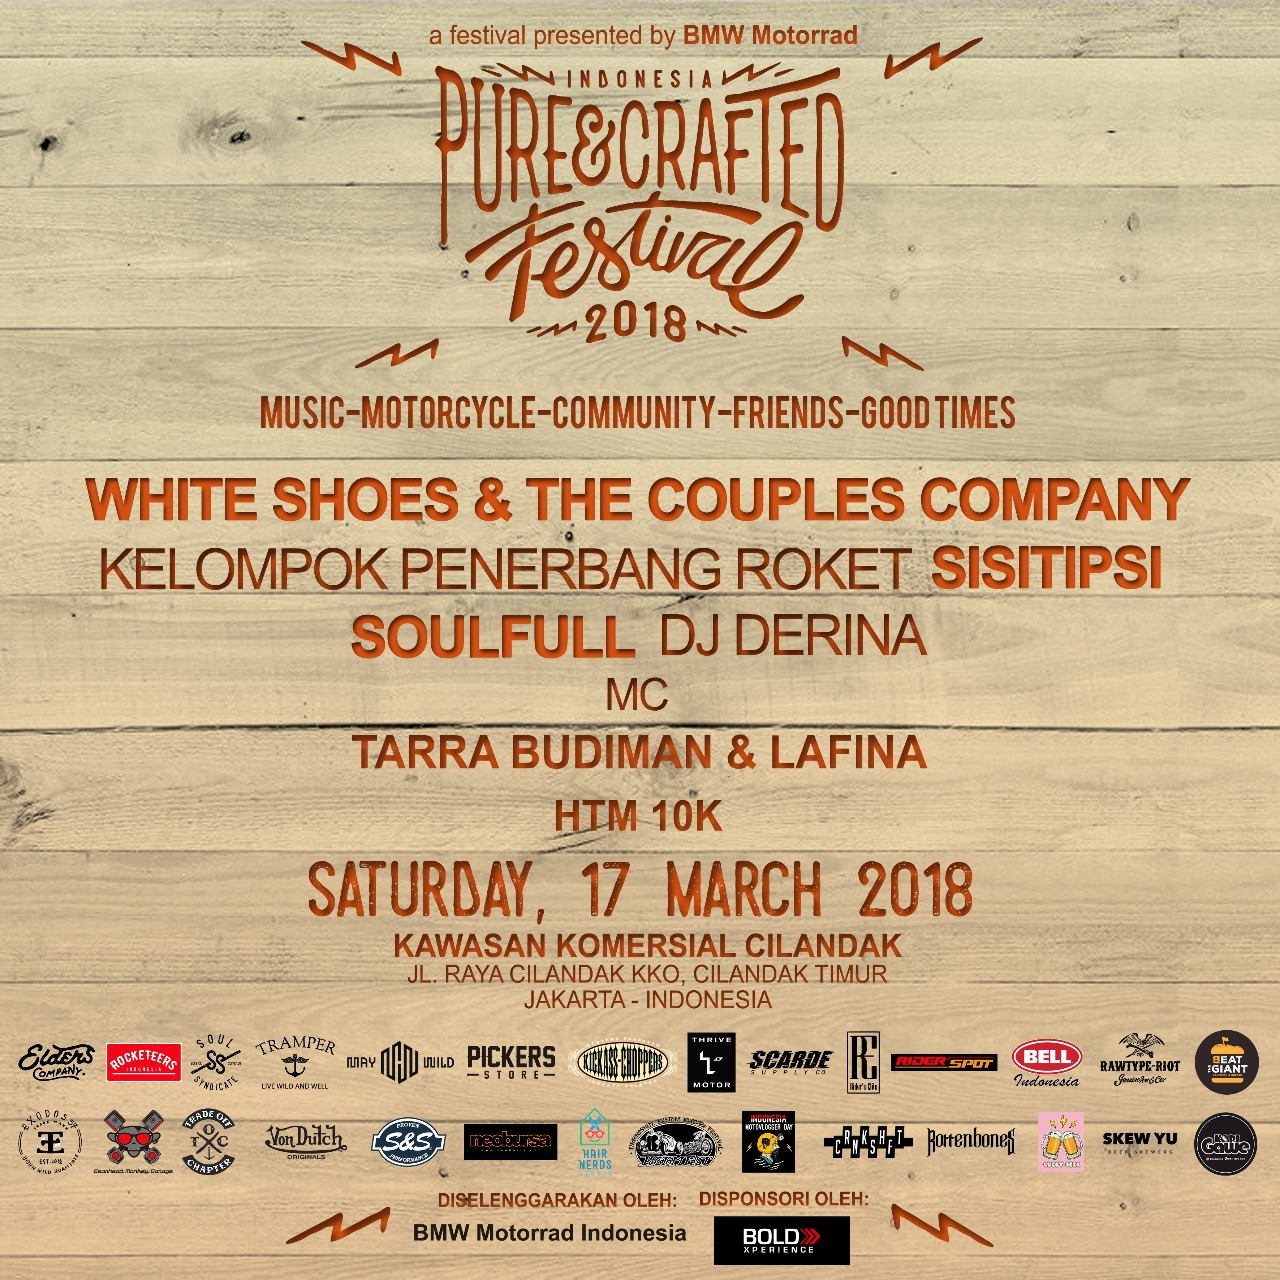 Indonesia Pure & Crafted Festival 2018